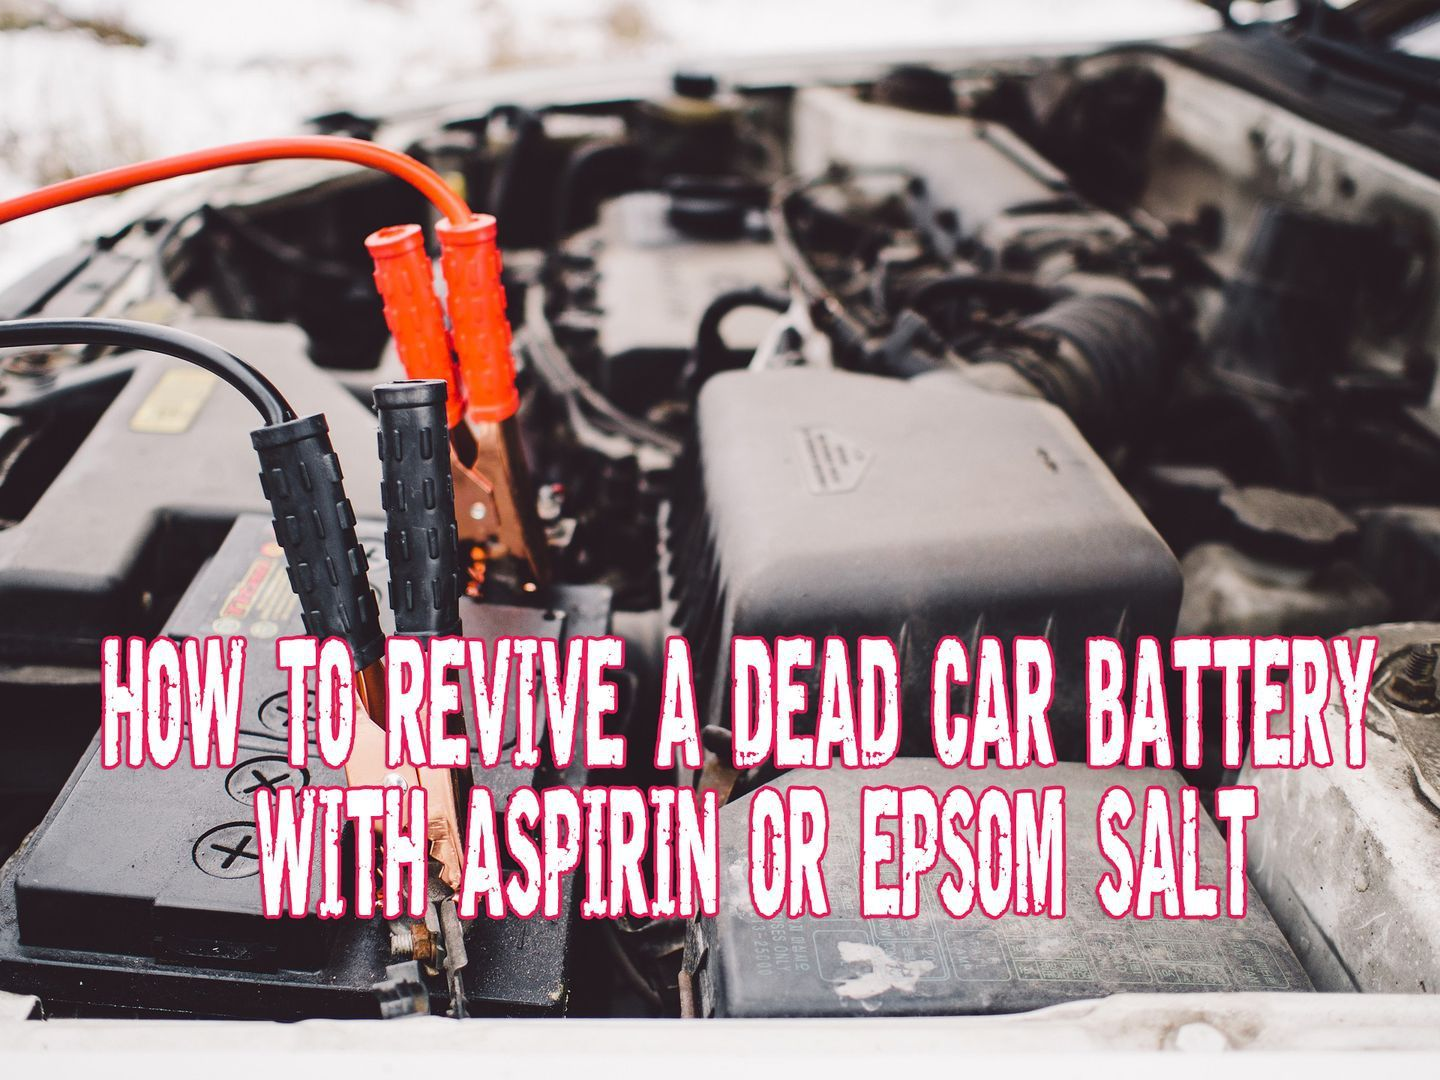 How To Revive A Dead Car Battery With Aspirin Or Epsom Salt Dead Car Battery Car Battery Battery Hacks